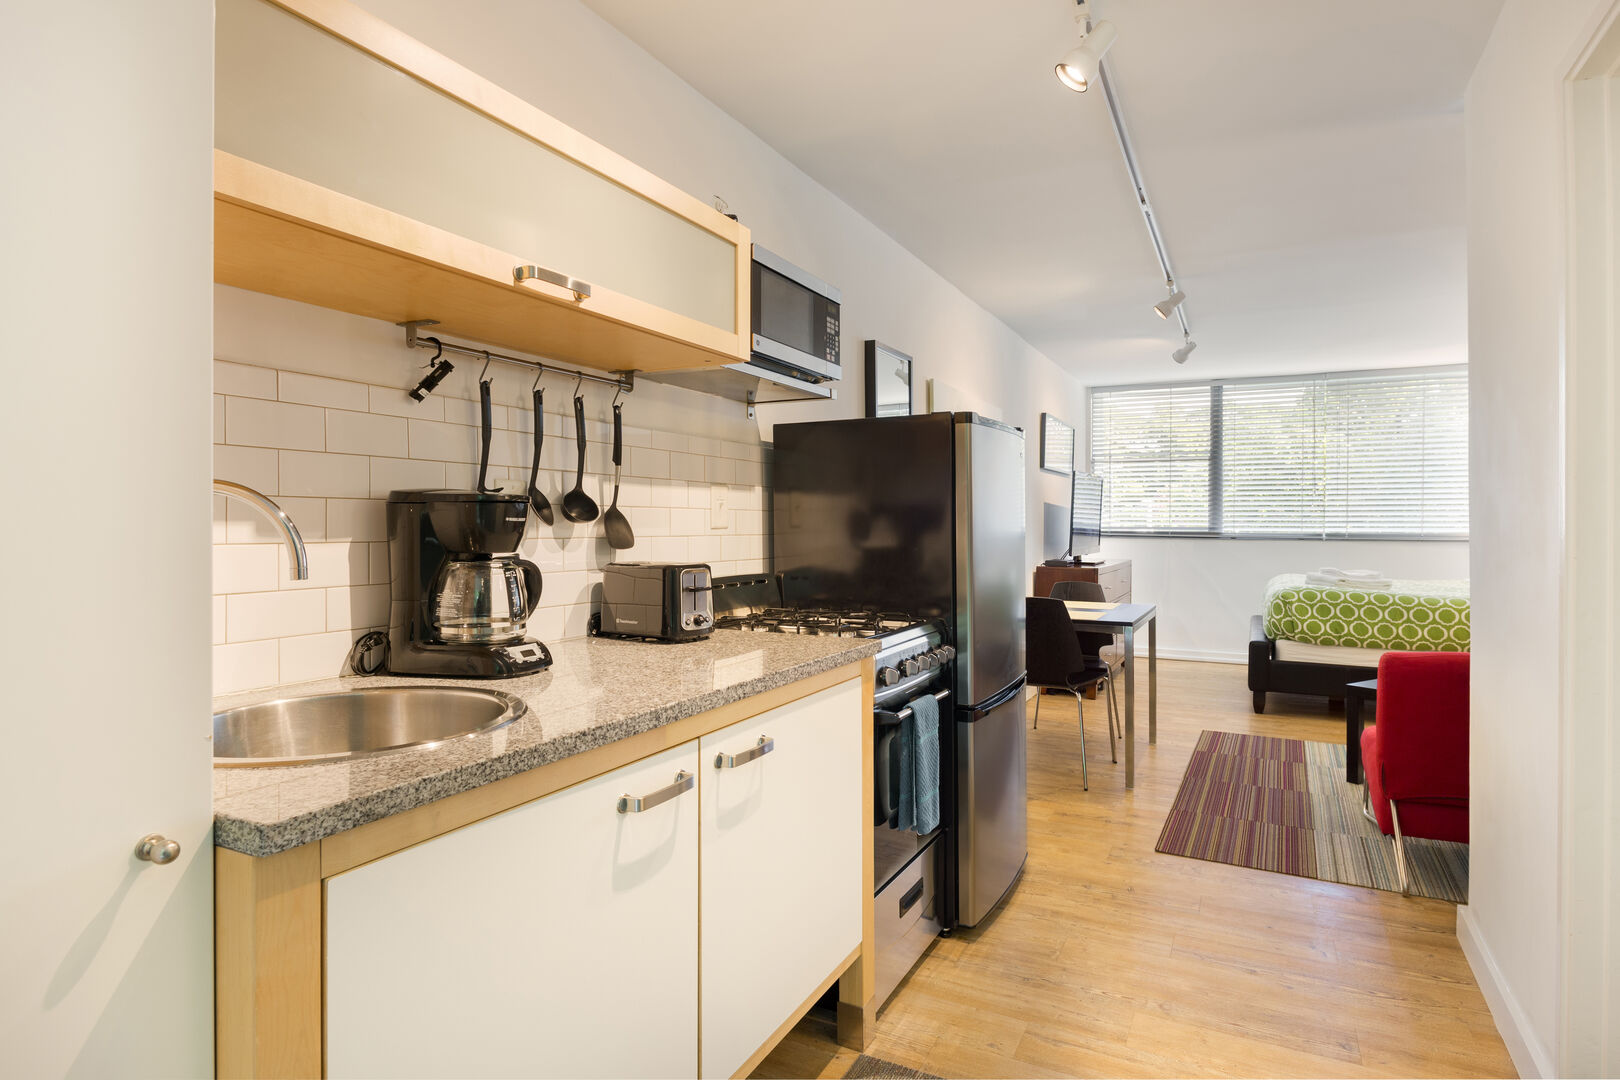 Fully Equipped Kitchen and Living Room - Short Term Apartment Atlanta - Chic Premium Studios On 25th